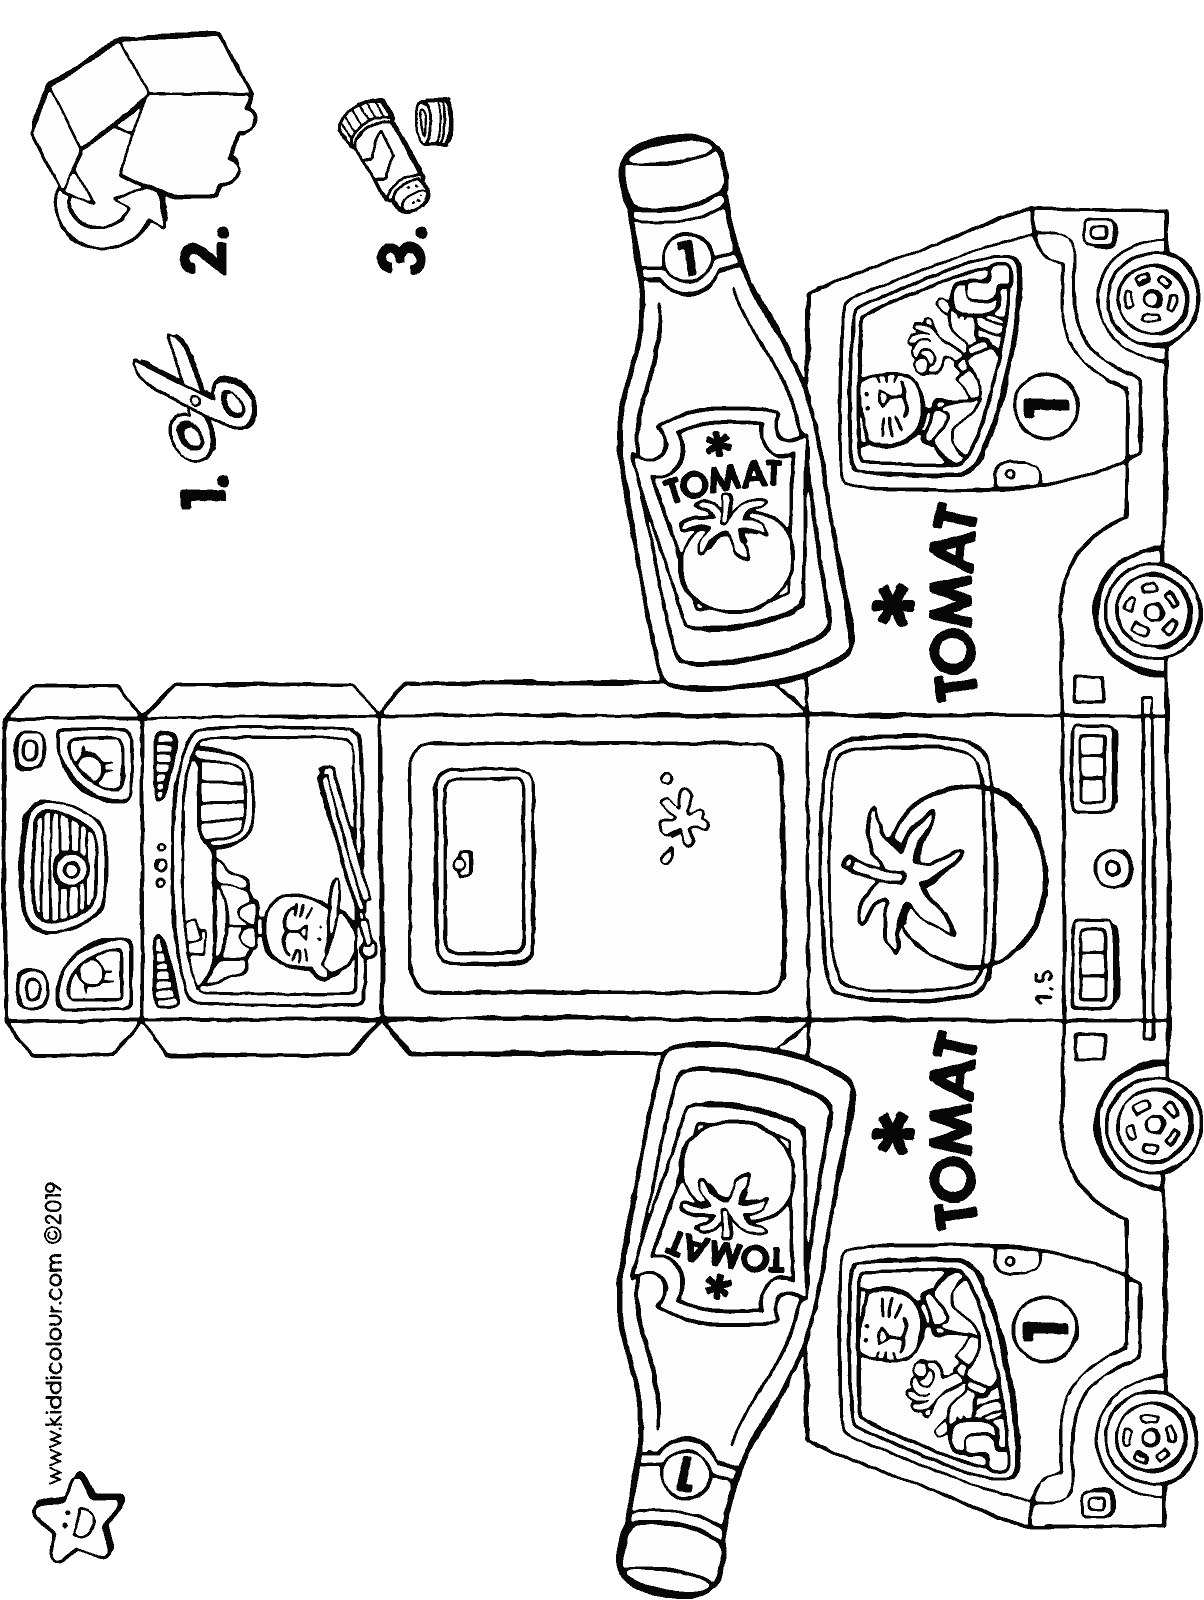 make your own delivery van with ketchup bottle colouring page drawing picture 01H